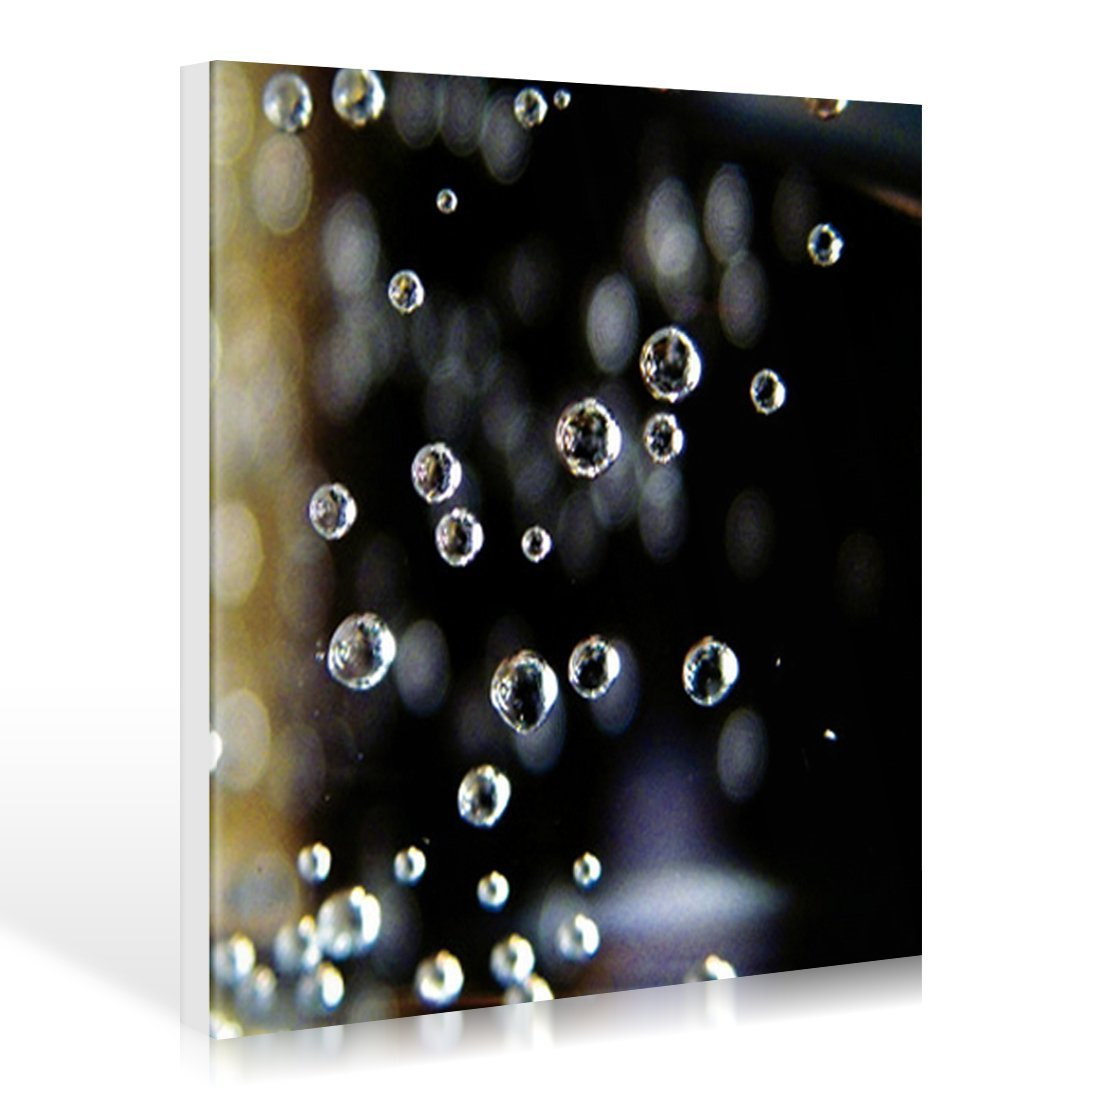 Leinwandbild Ortwin Klipp - Slow Motion II - 90 x 90cm - Premiumqualität - Photokunst, soziale Einrichtungen, Büro, Business - MADE IN GERMANY - ART-GALERIE-SHOPde